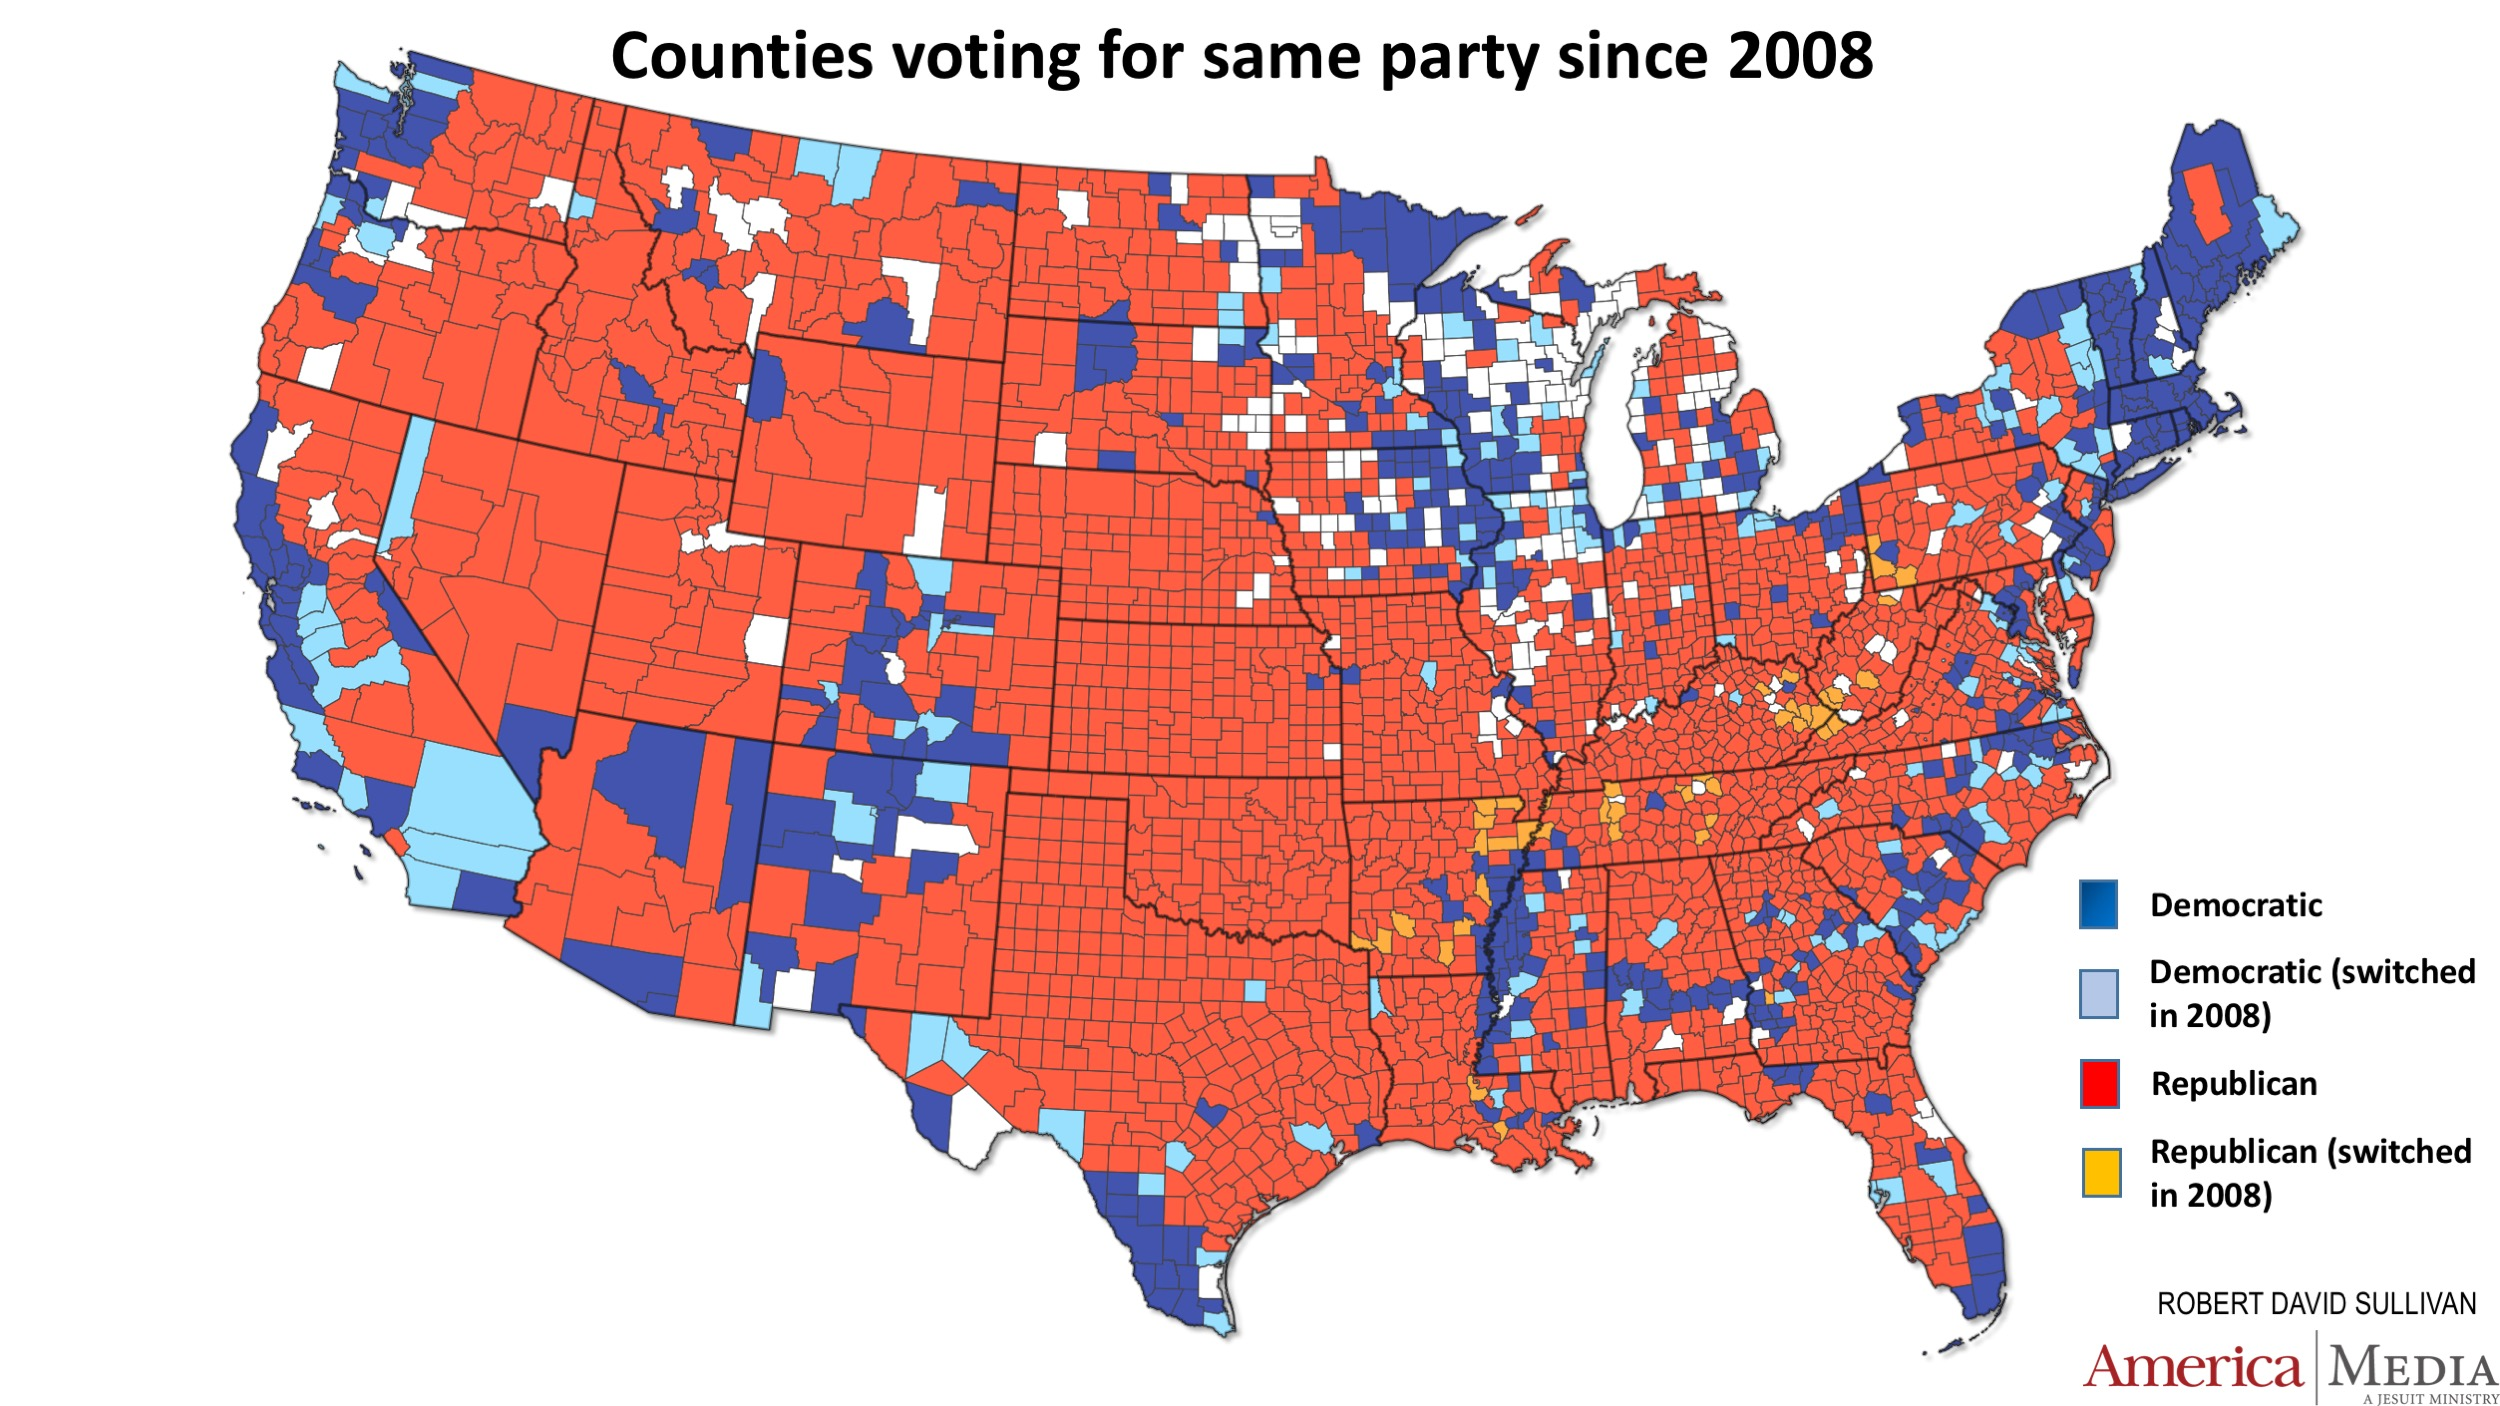 How the red and blue map evolved over the past century ... Map Of Democratic States on map of usa with electoral votes, red and blue states 2012, democratic blue states 2012, map of usa in thyroid cancer, republican states 2012, map of democrats and republicans in congress 2013, map of germany states 2012, presidential election battleground states 2012,